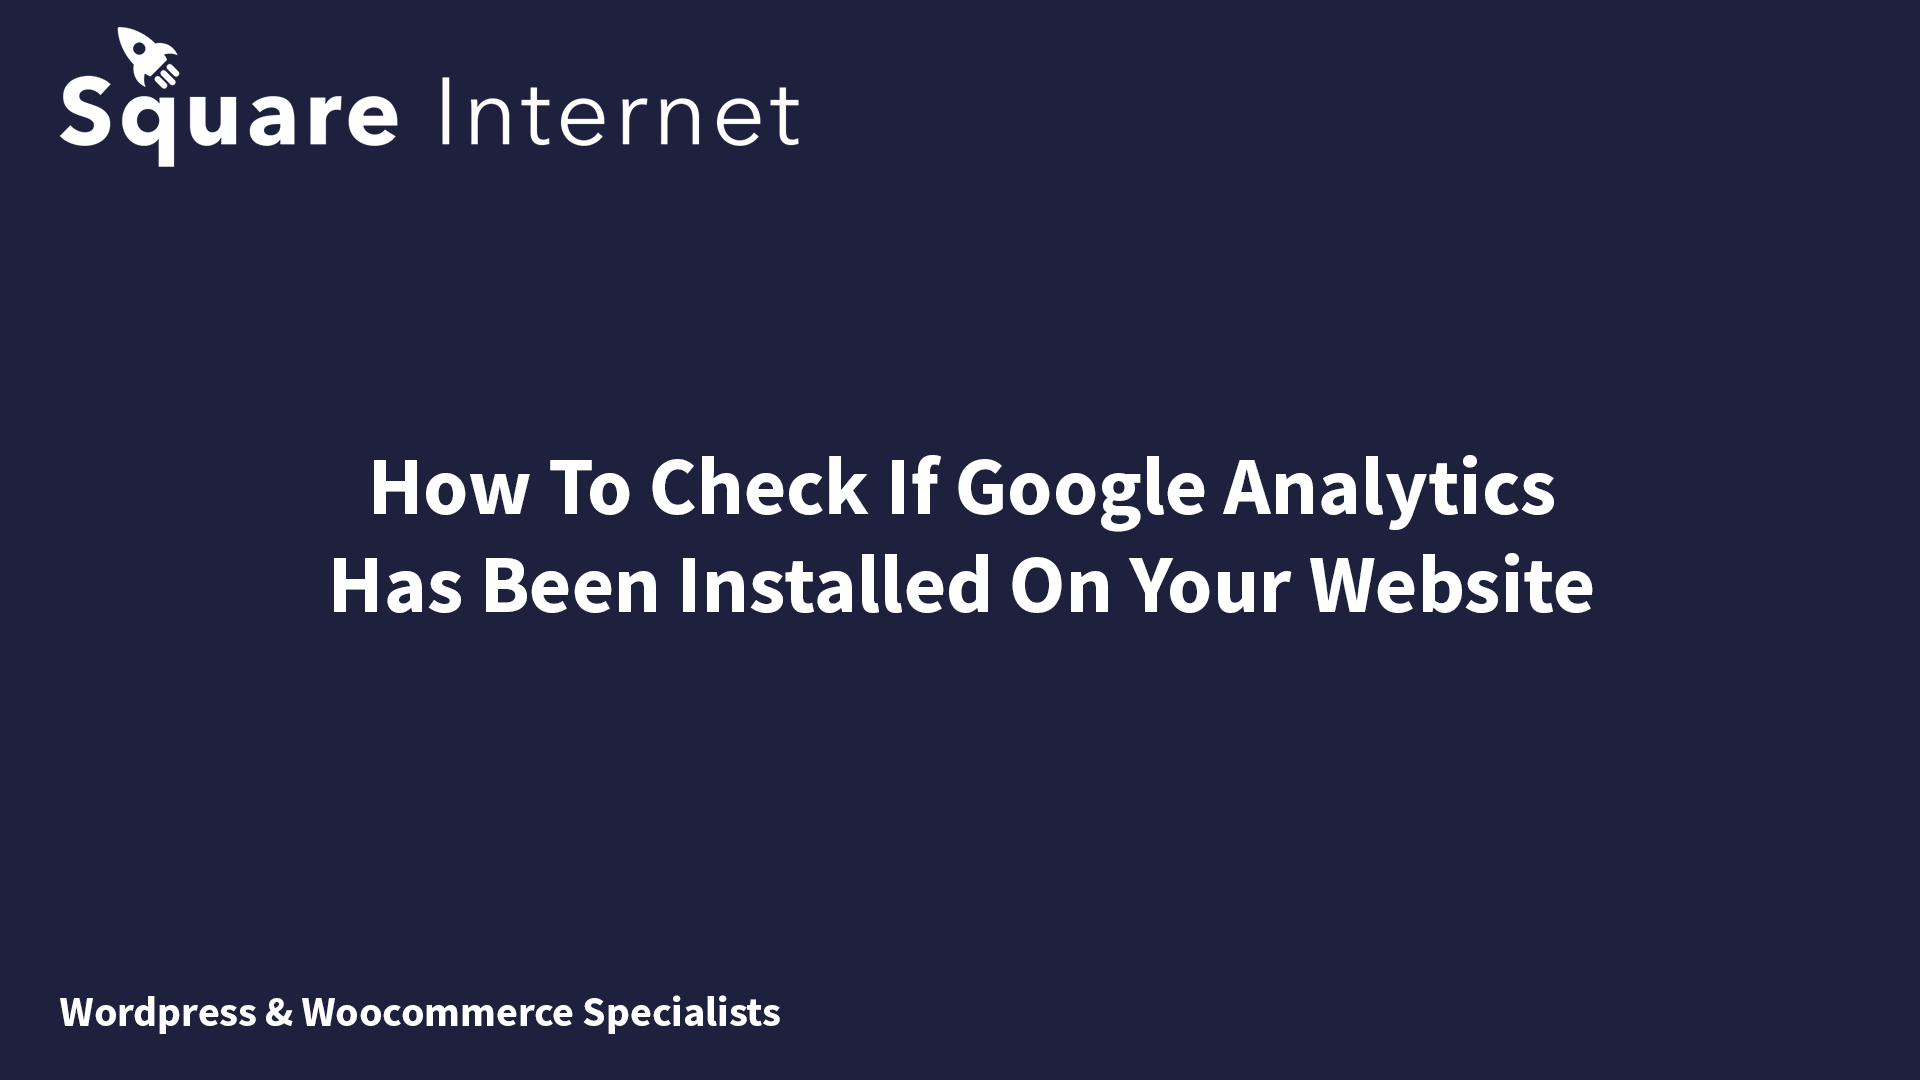 How To Check If Google Analytics Has Been Installed On Your Website